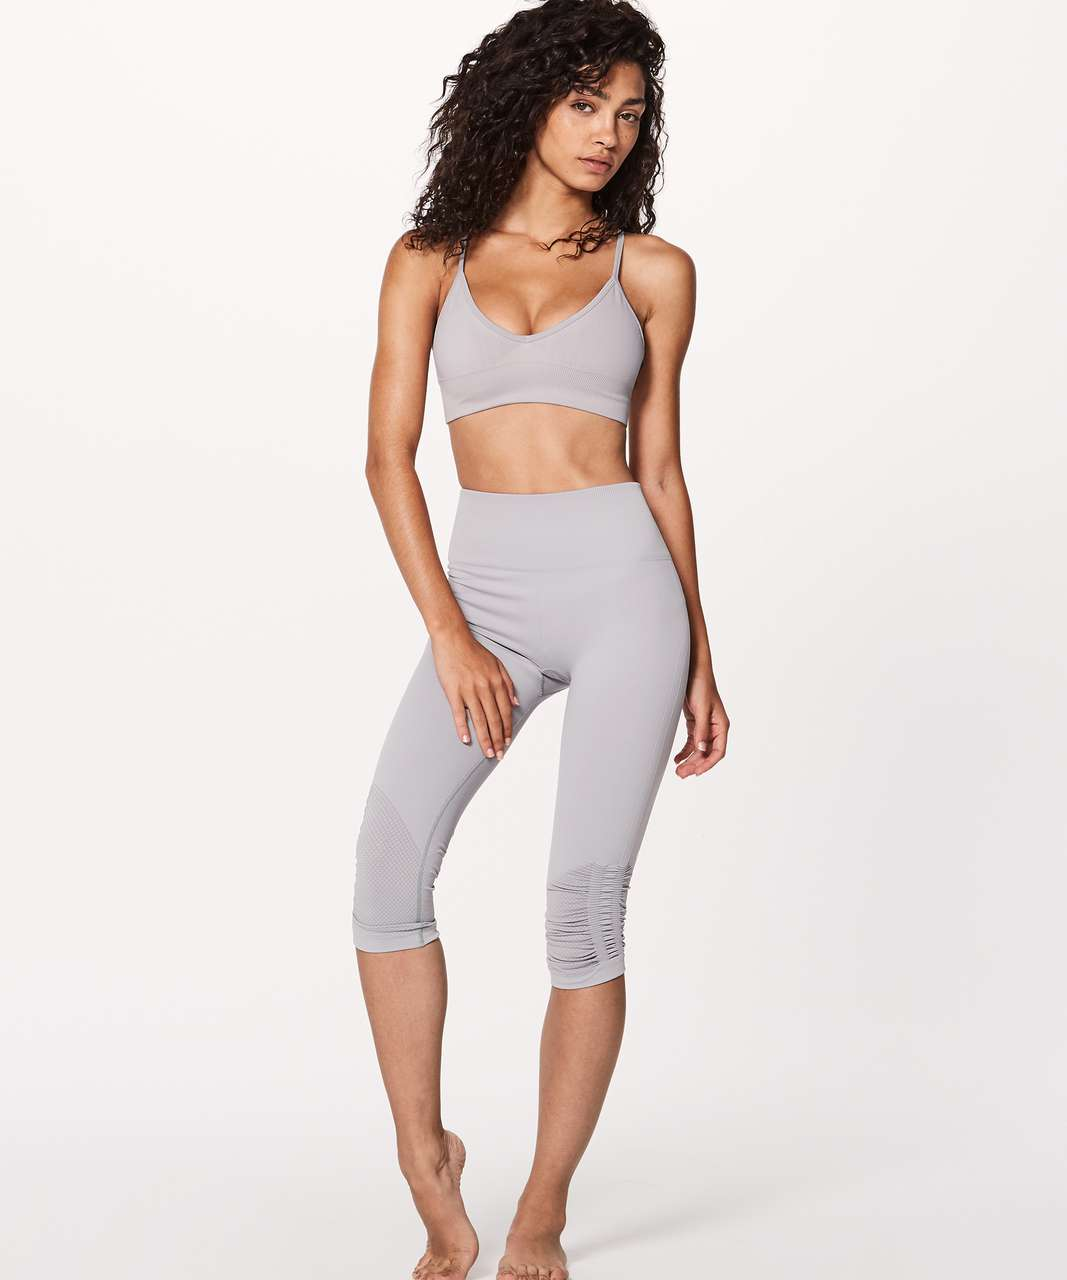 Lululemon Awakening Bra Taryn Toomey Collection Chrome